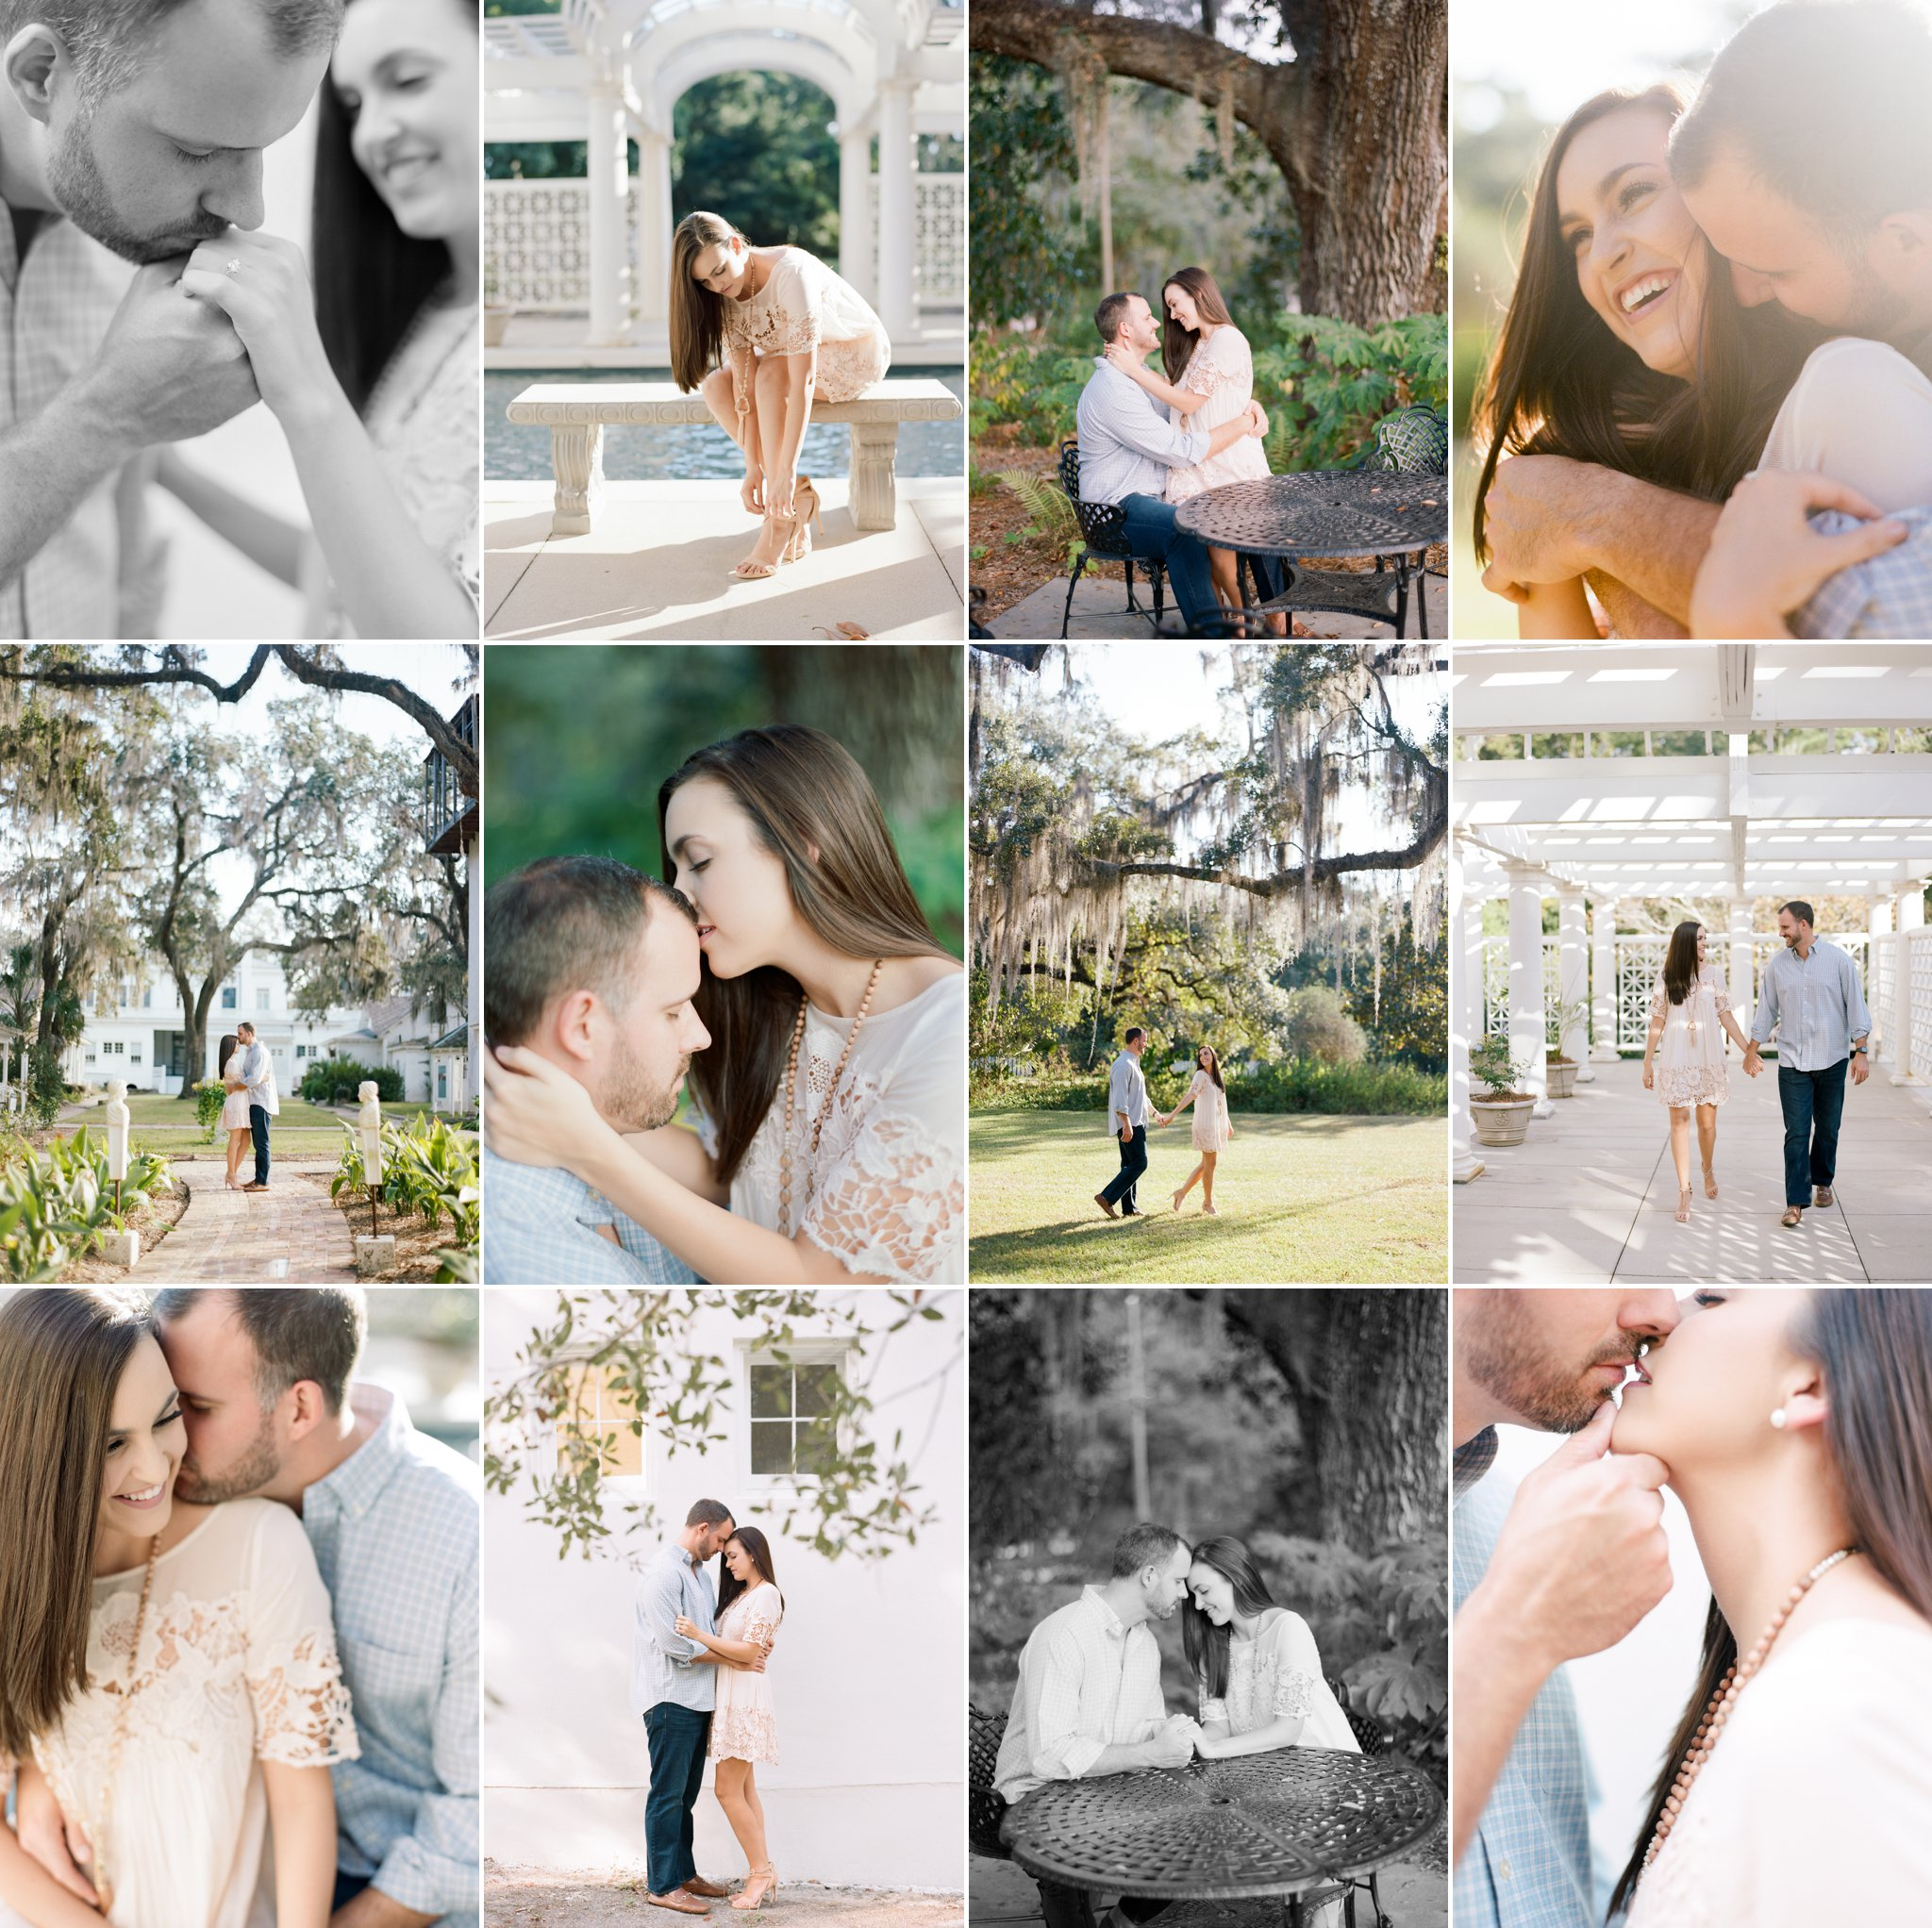 tallahassee wedding photographer shannon griffin photography_0005.jpg